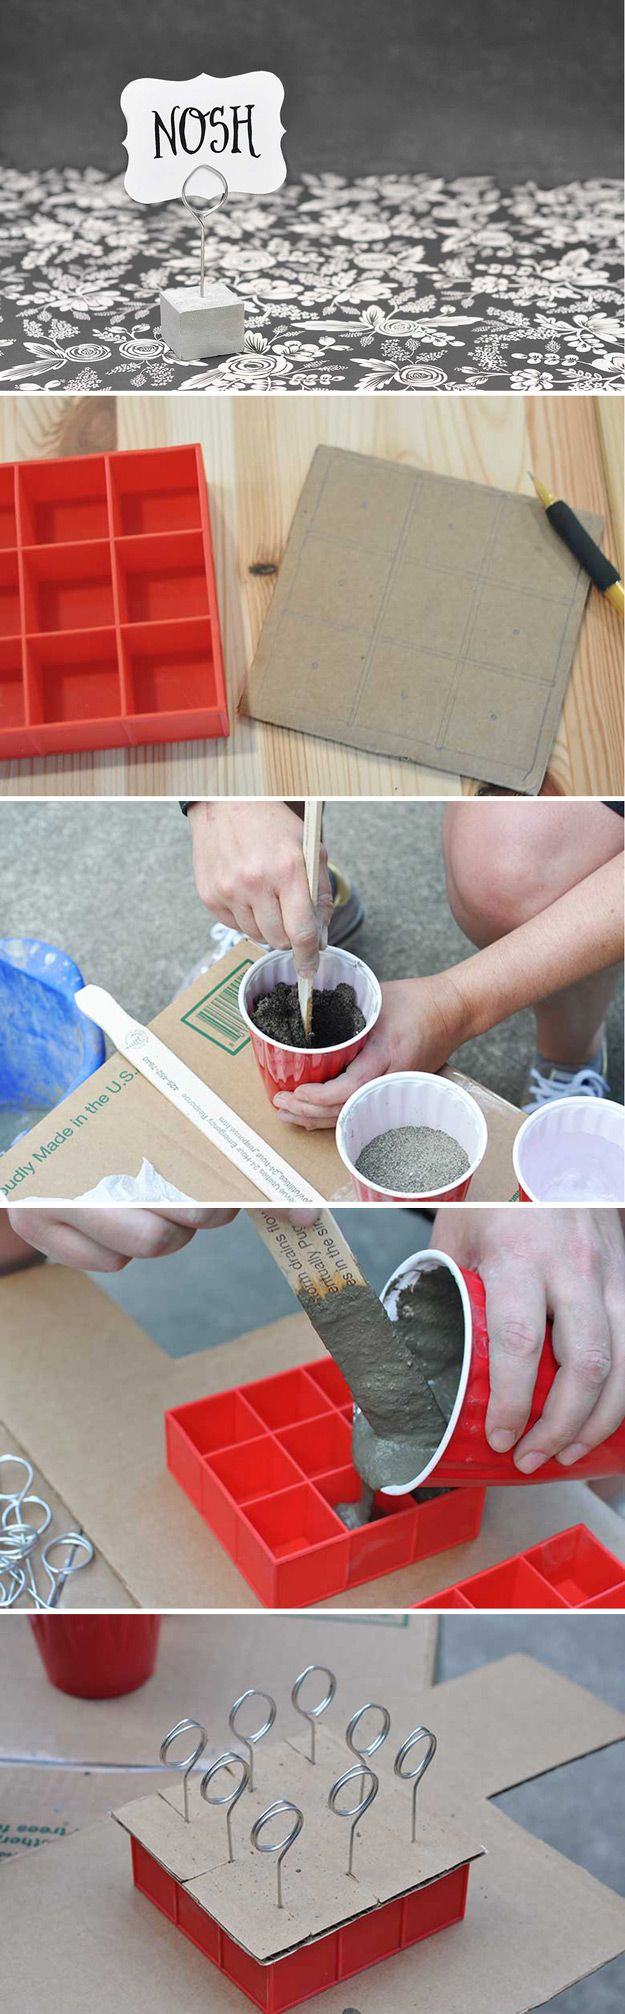 Cute Homemade Craft Projects with Ice Cube Trays   Cement and Wire Stands by DIY Ready at http://diyready.com/14-unexpected-ways-to-use-an-ice-cube-tray/